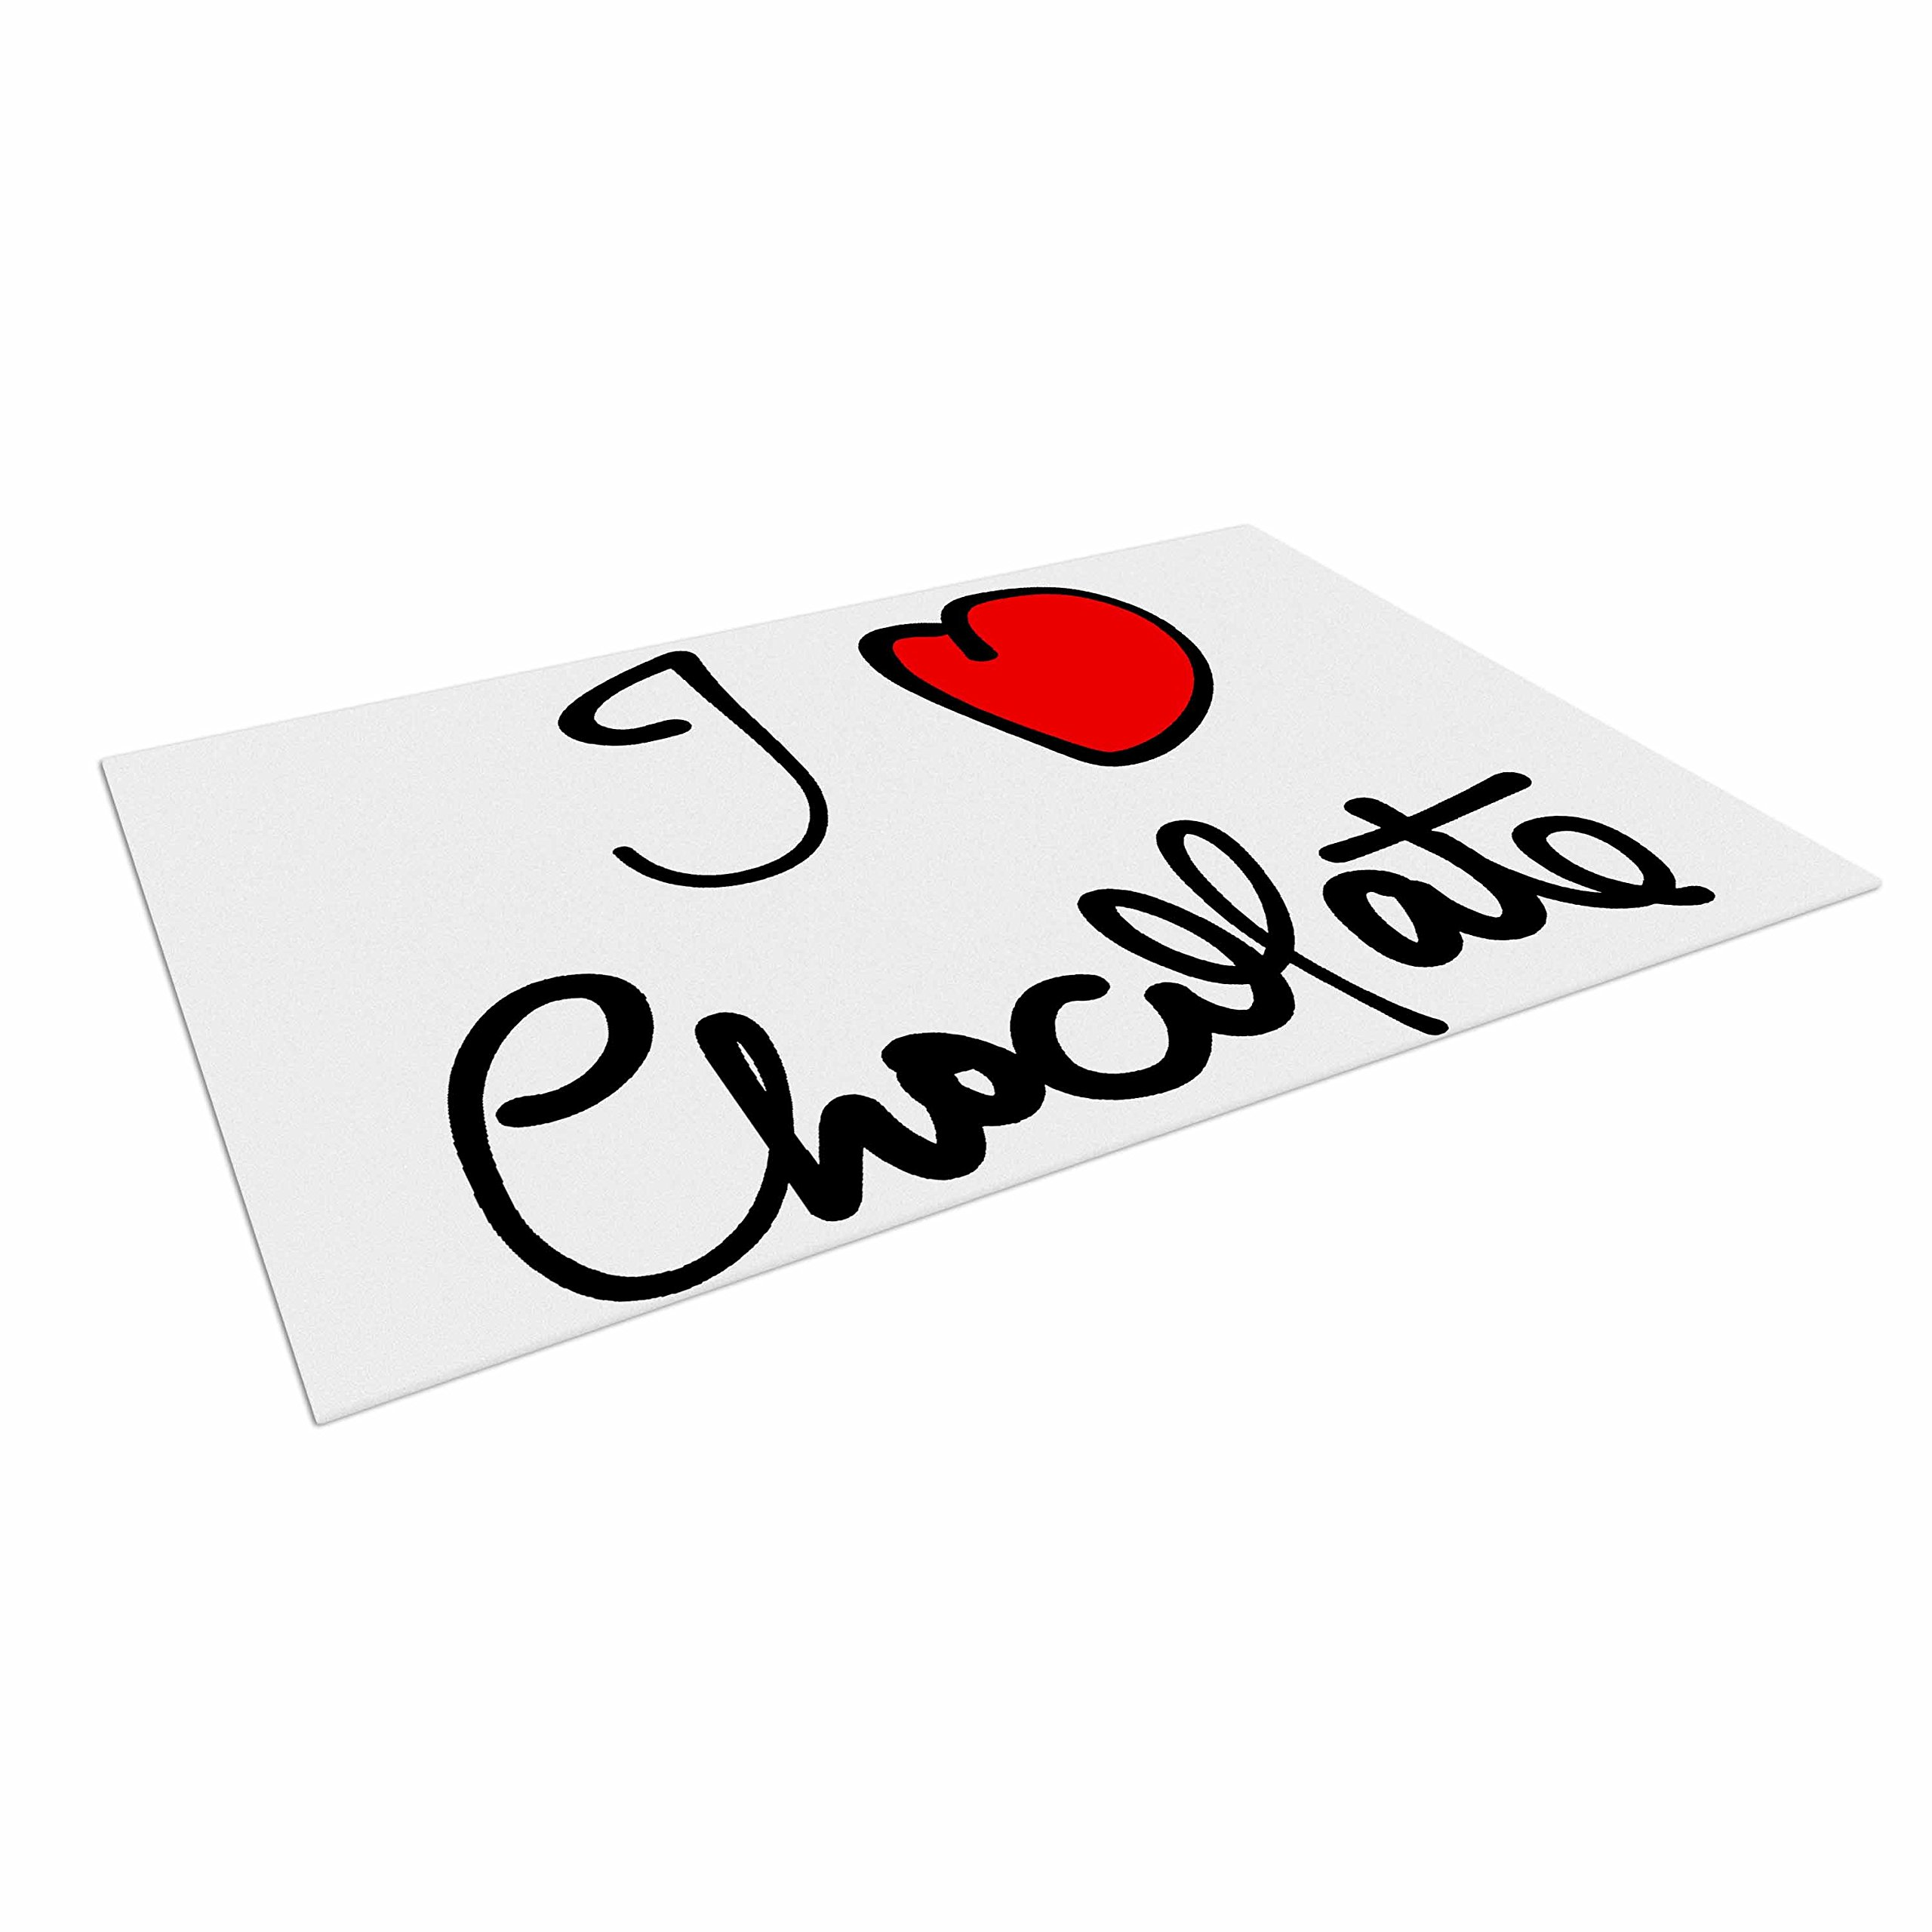 KESS InHouse Gabriela Fuente ''I Love Chocolate'' Food Typography Outdoor Floor Mat, 4' x 5'